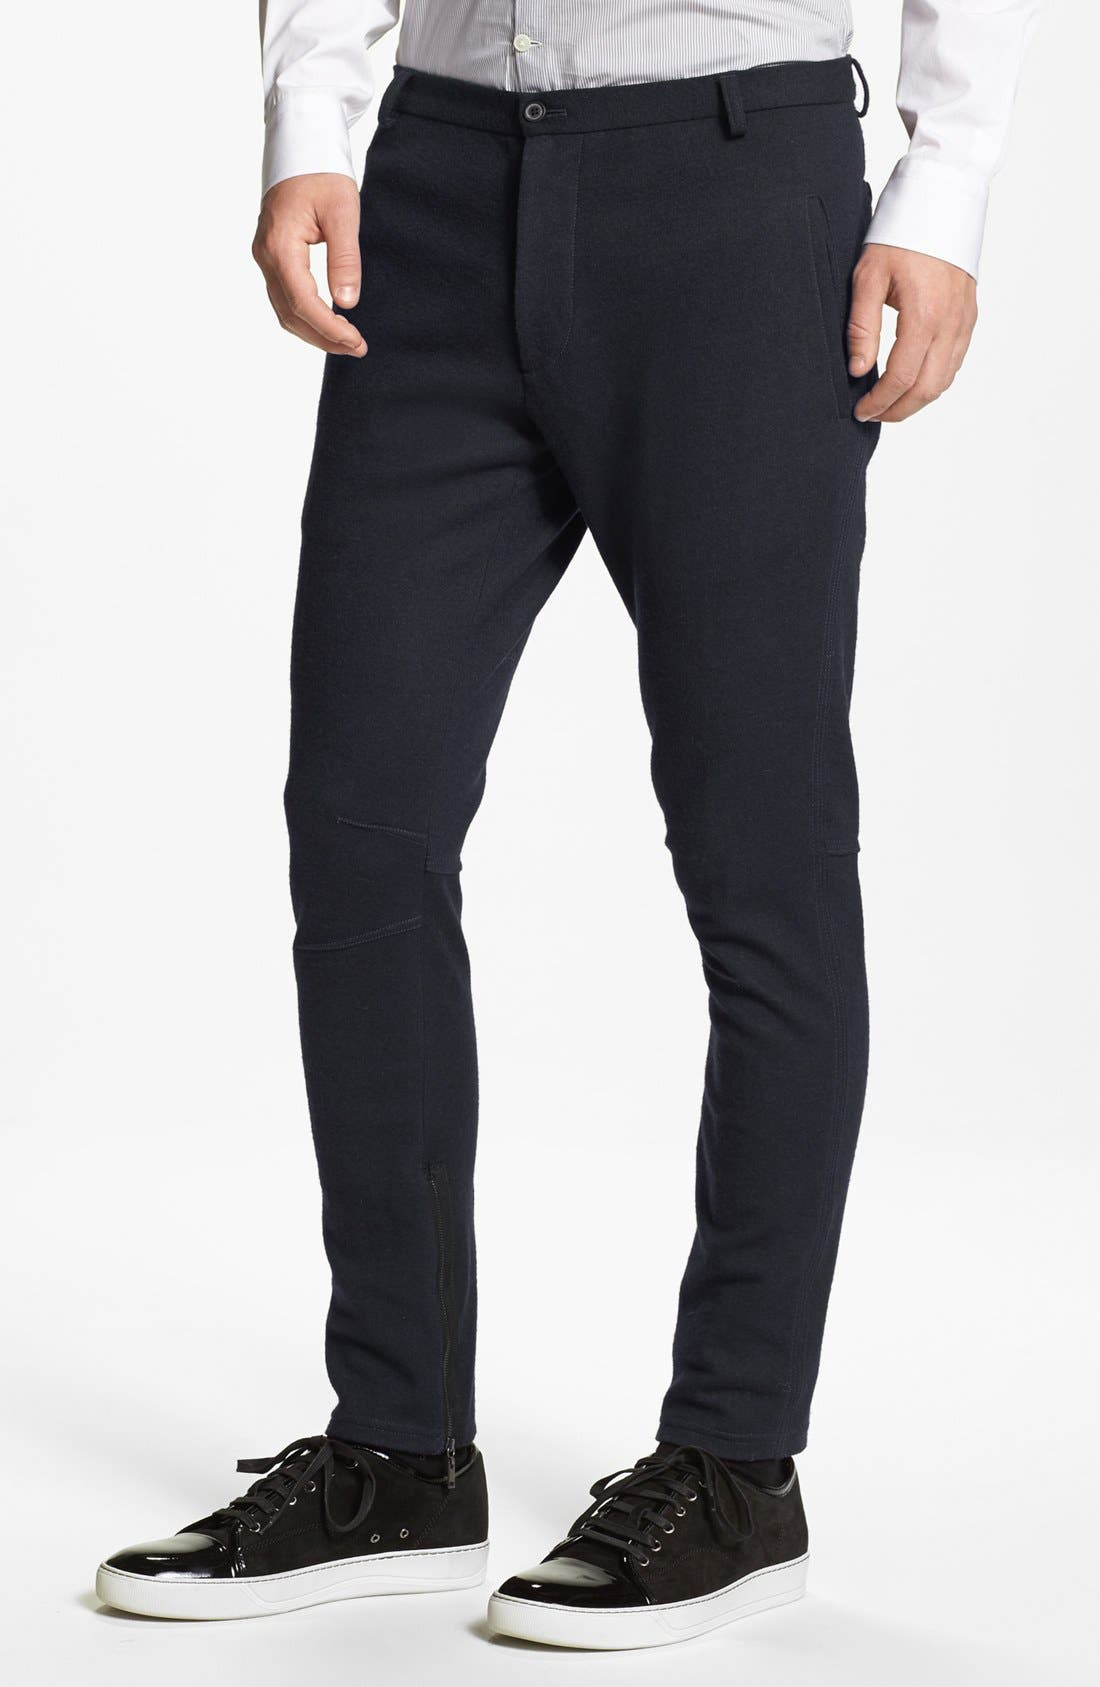 Alternate Image 1 Selected - Lanvin Slim Fit Stretch Pants